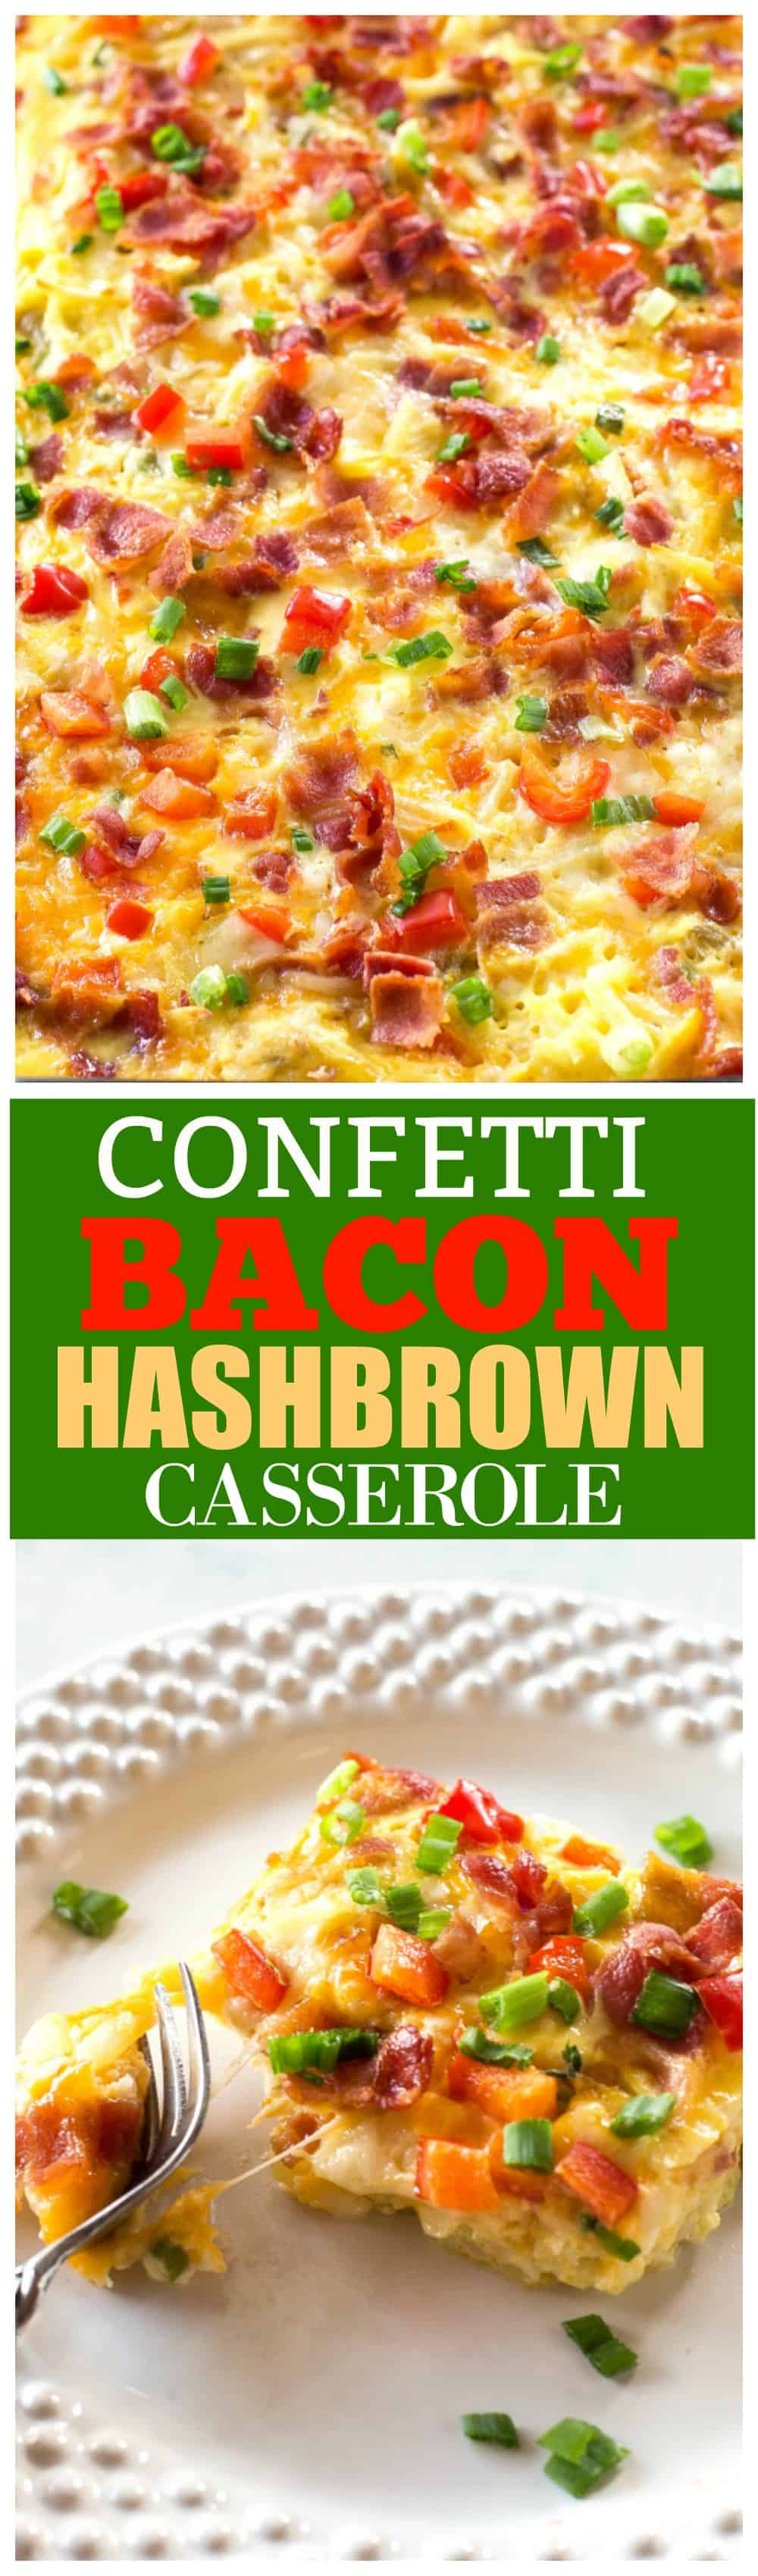 Confetti Bacon Hashbrown Casserole - a great breakfast for entertaining filled with cheesy hash browns, eggs, chiles, green onions, and red bell pepper. #bacon #hashbrown #hash #brown #casserole #egg #recipe #breakfast